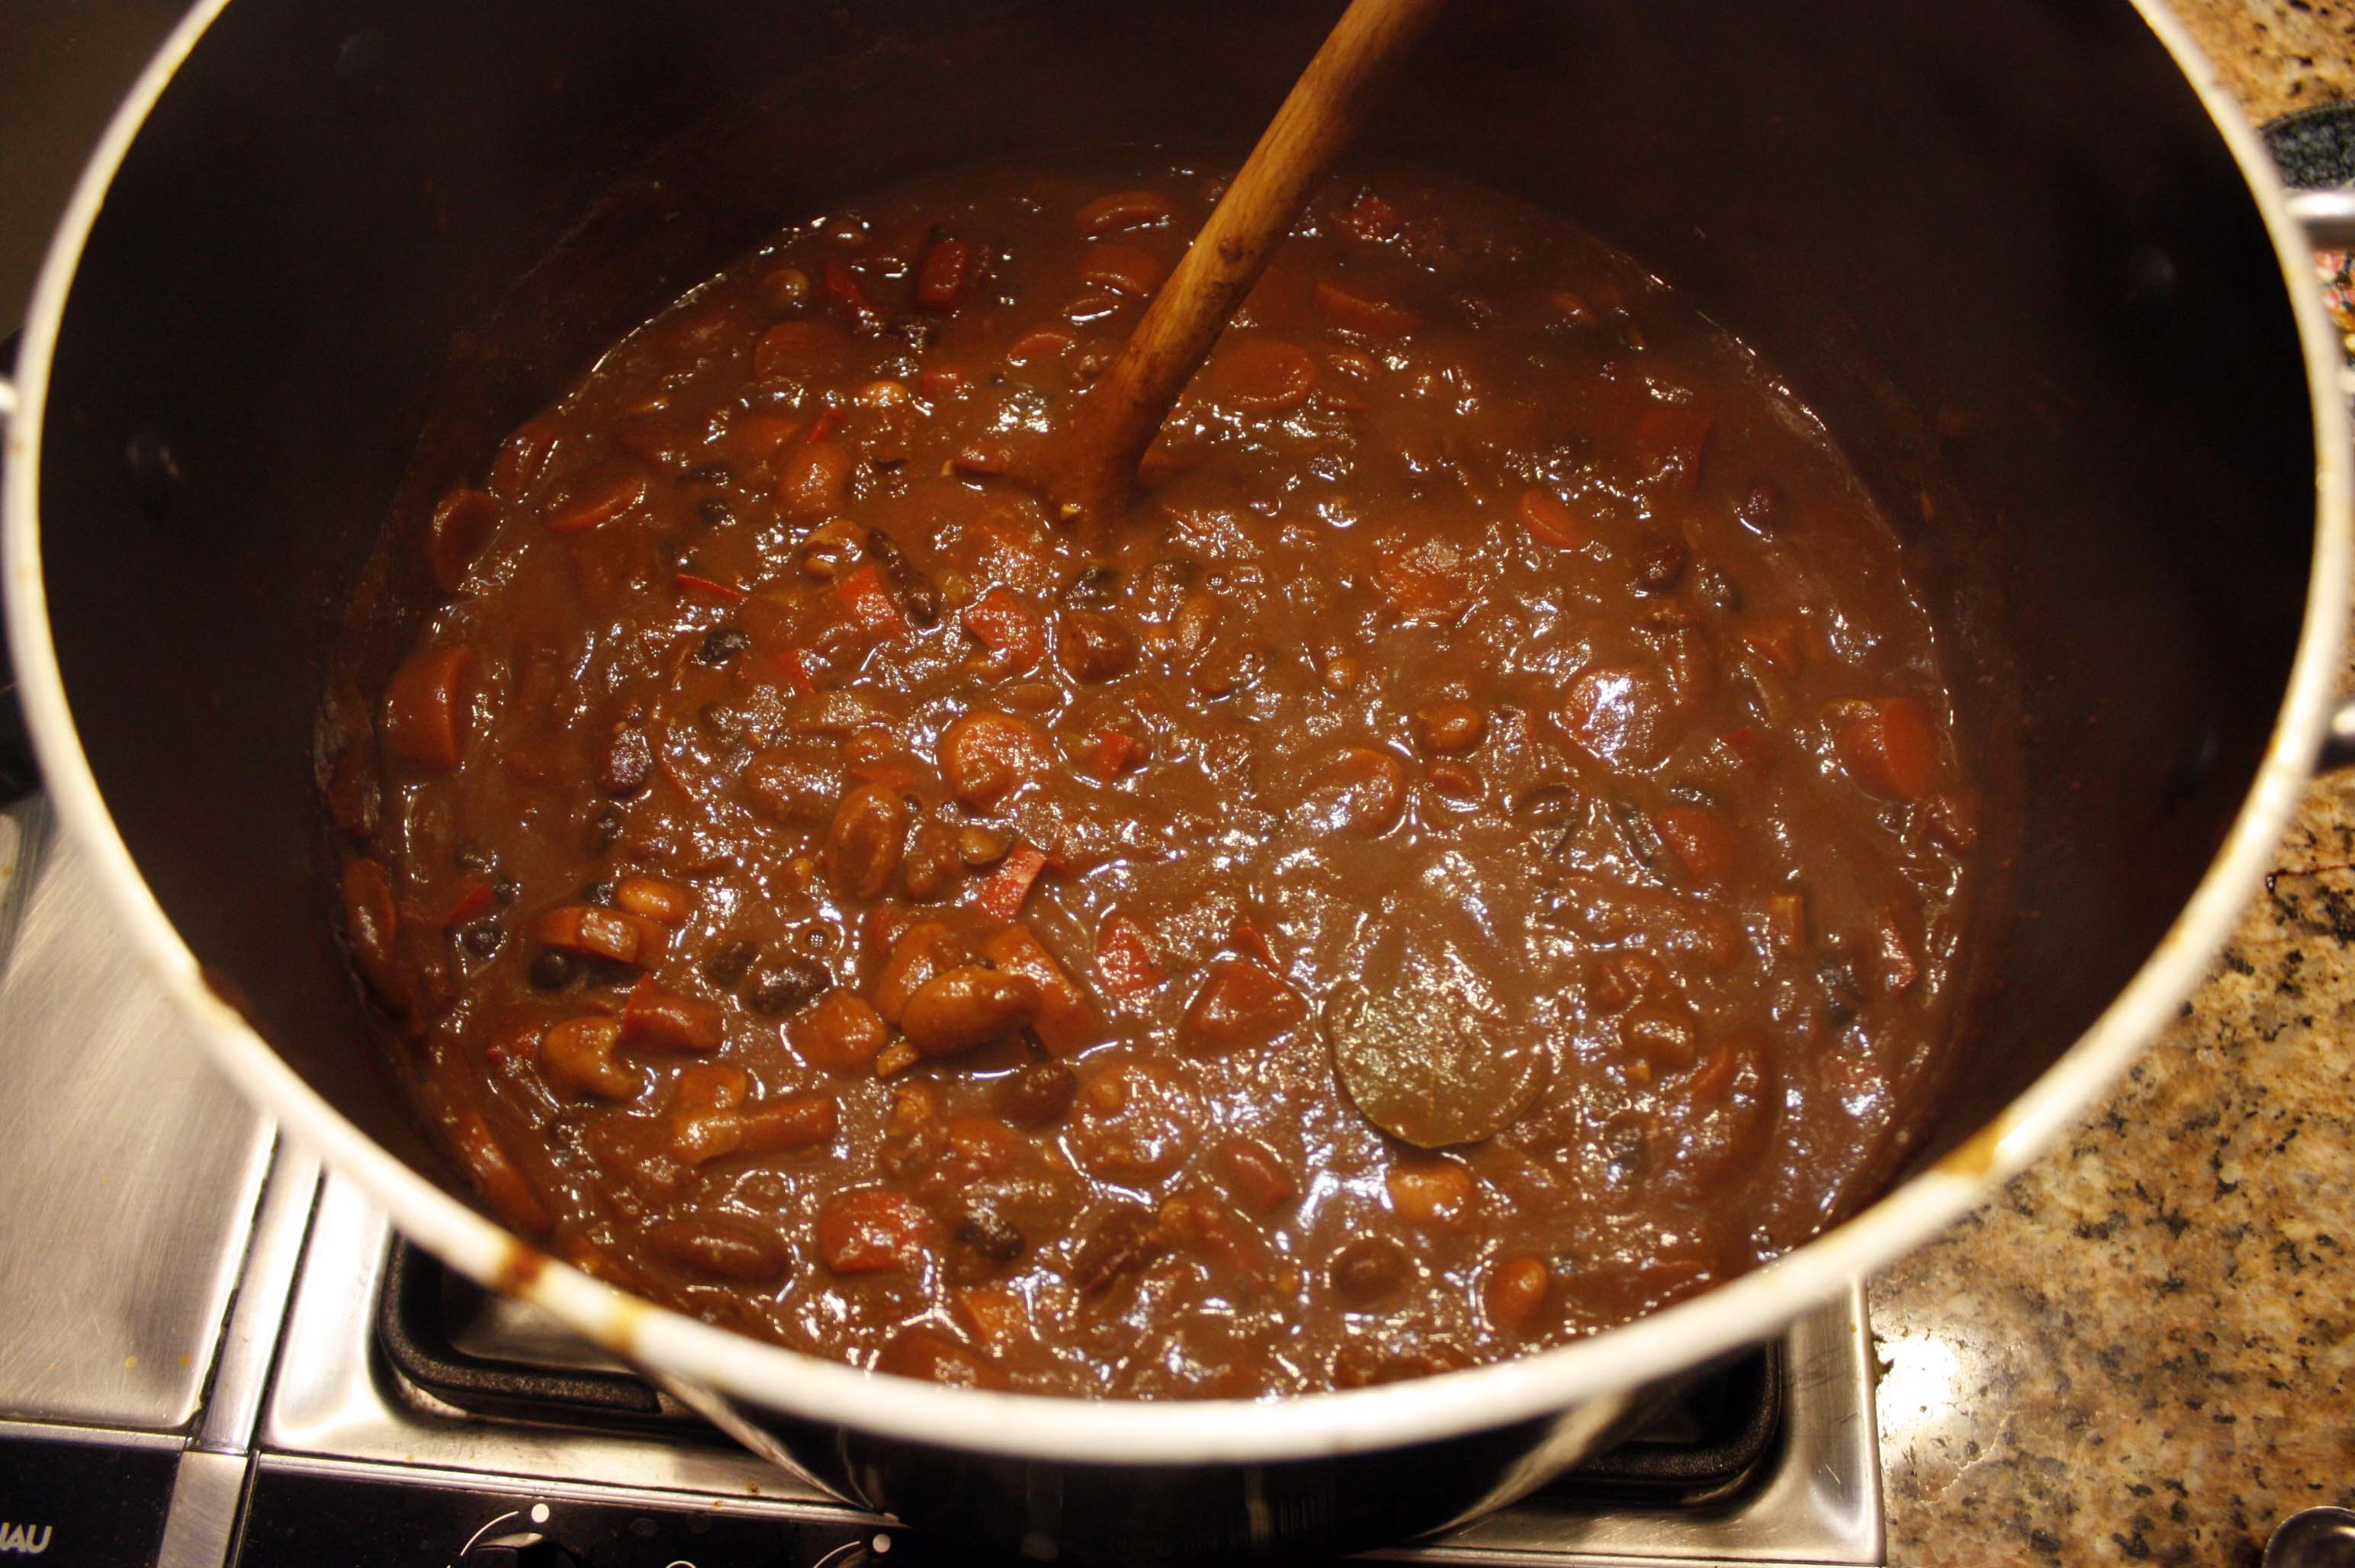 Smoky Chipotle-Cocoa-Masala Spiced Vegetarian Chili